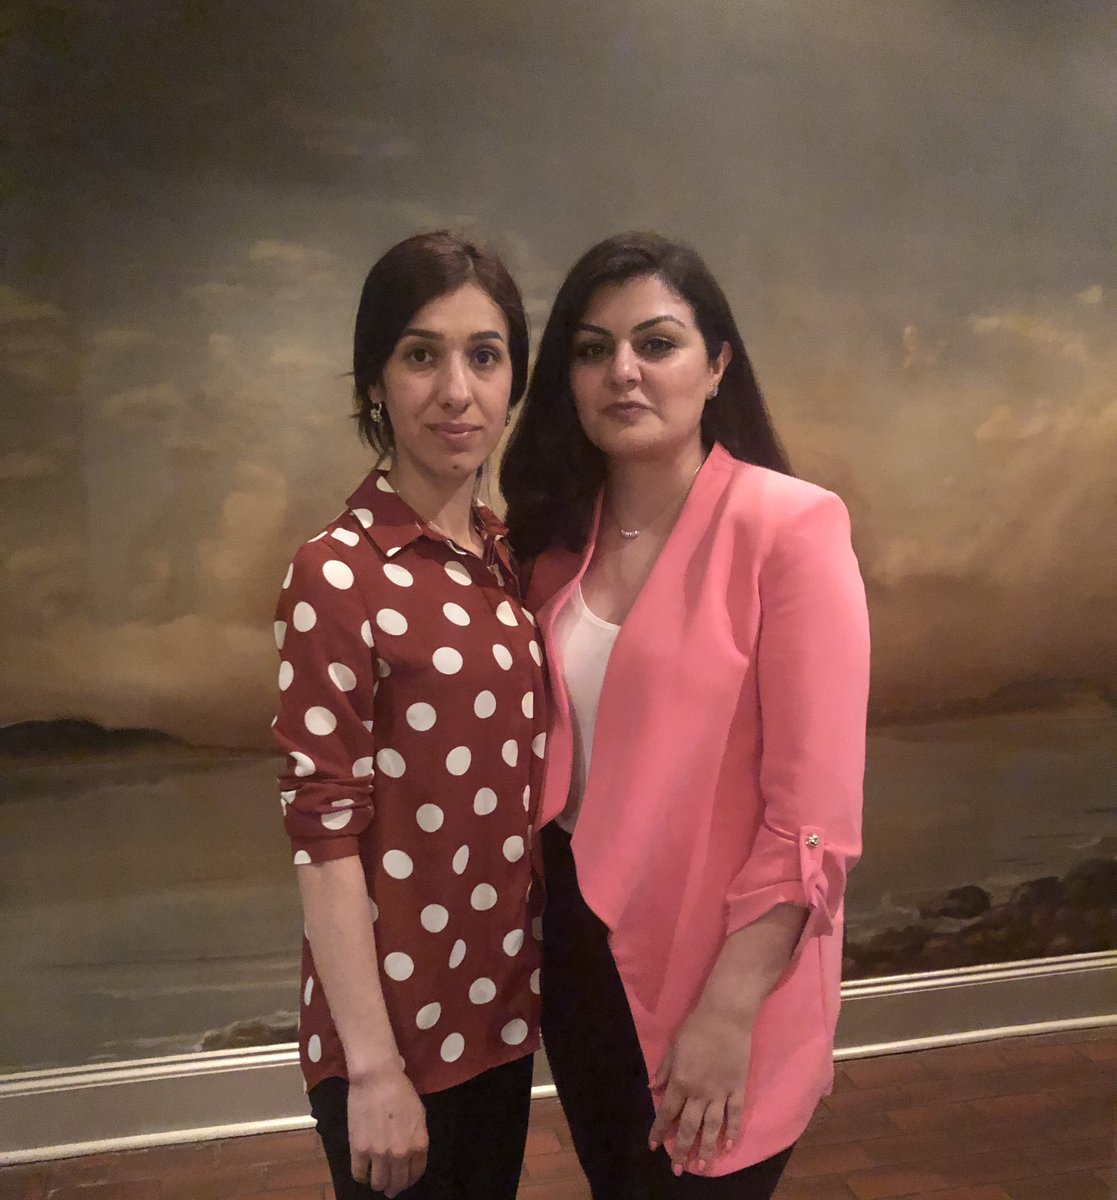 It was a great honor to meet Nadia Murad. Her courage, grace, and determination amidst the many challenges faced by the Yazidi people is inspiring. @NadiaMuradBasee